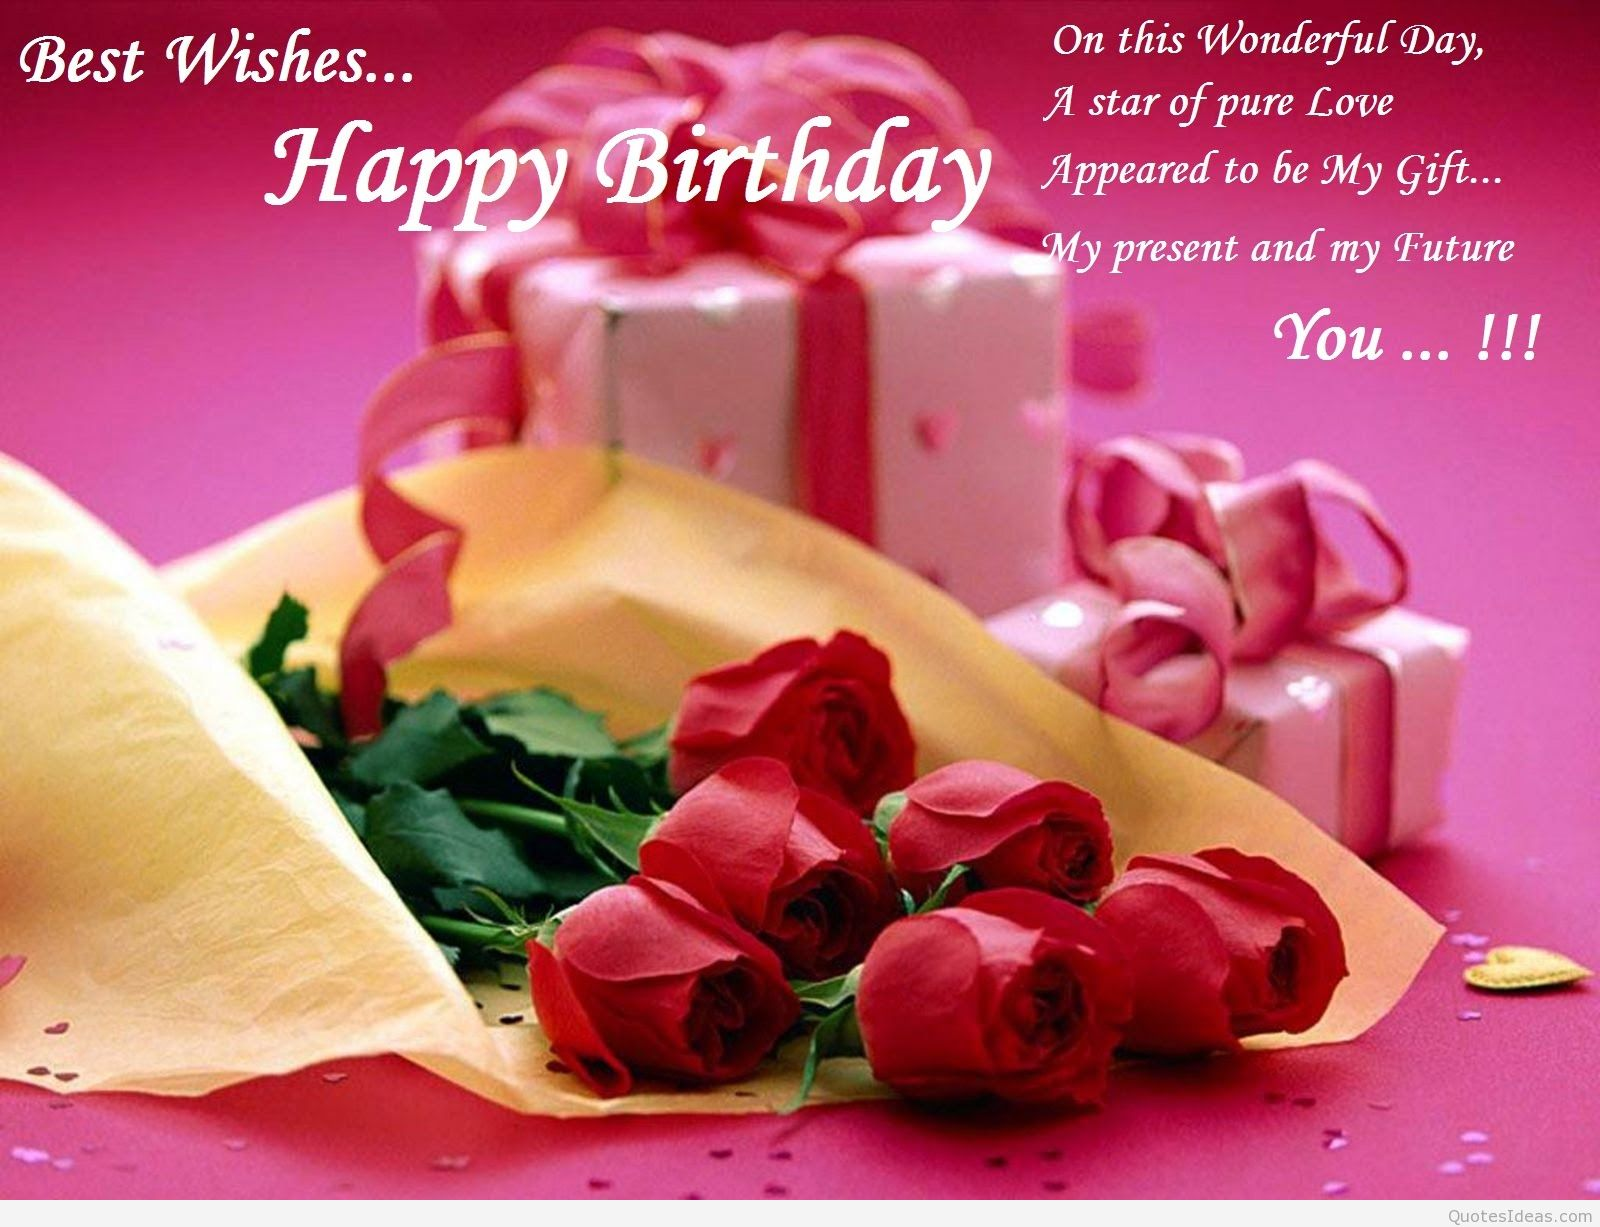 Happy birthday brother messages quotes and images 1600x1227